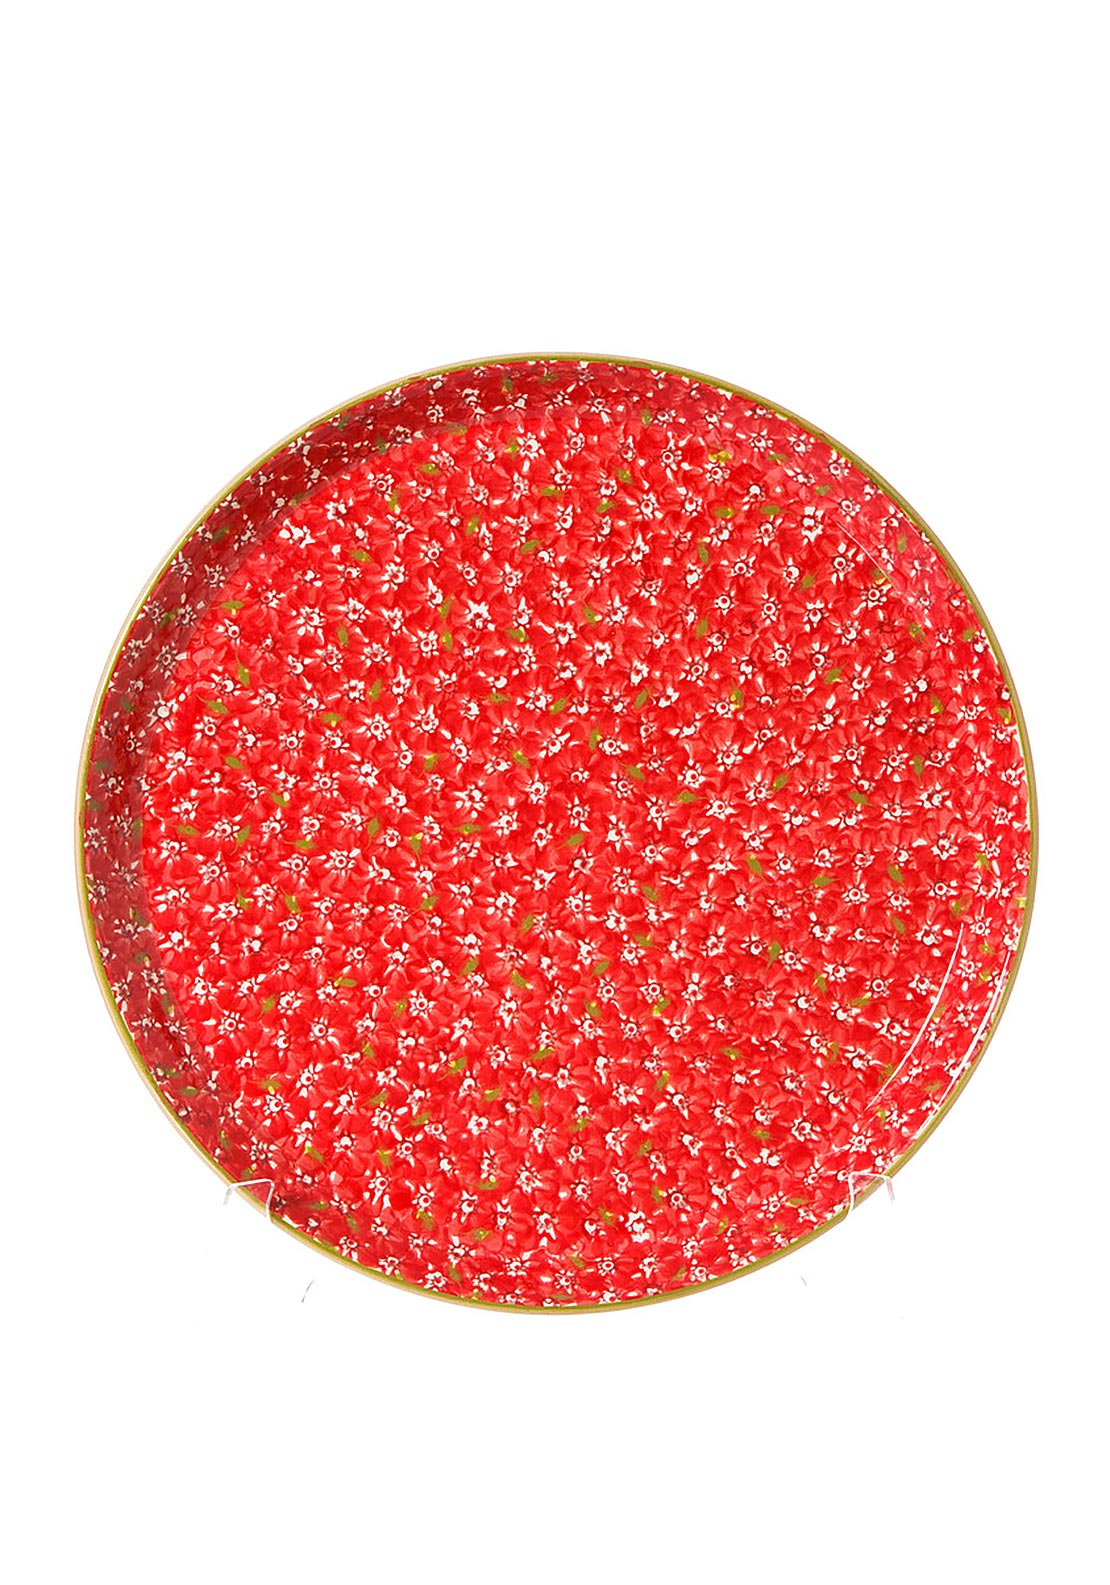 Nicholas Mosse Pottery Red Lawn Presentation Platter